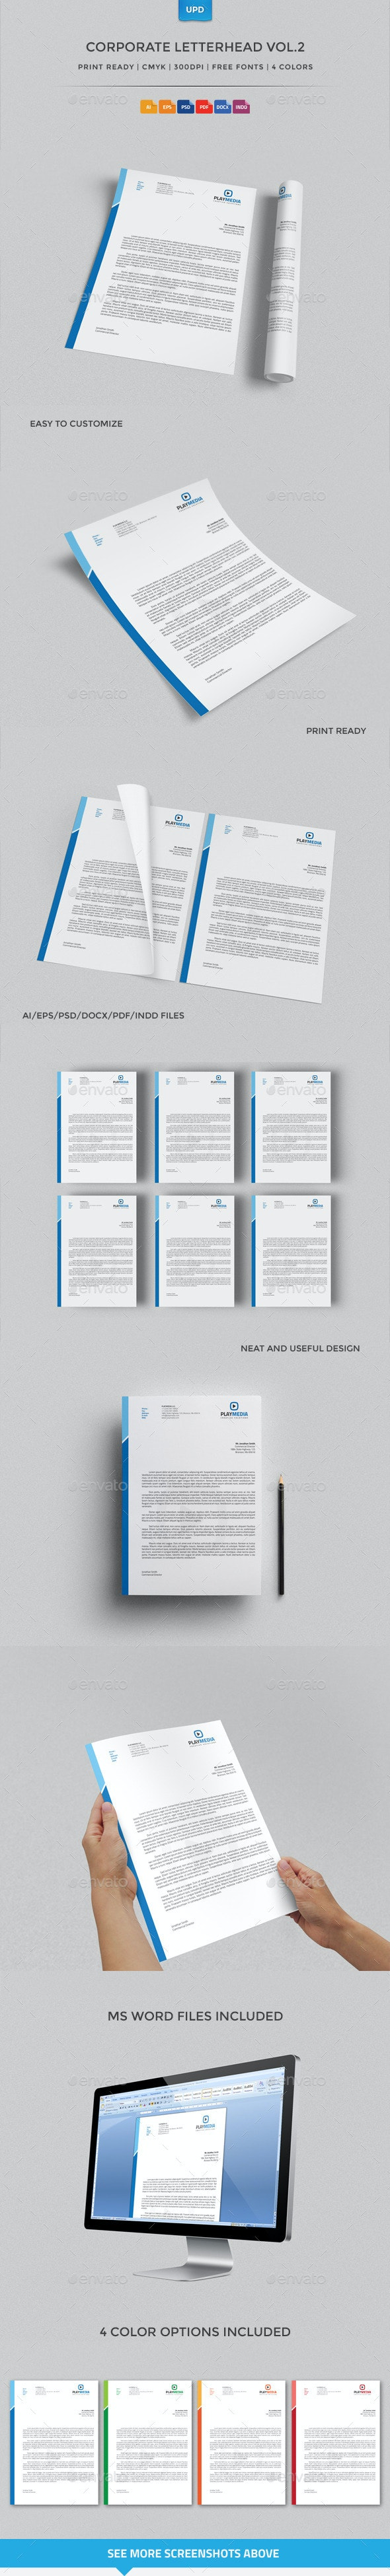 Corporate Letterhead Vol.2 with MS Word Doc - Stationery Print Templates